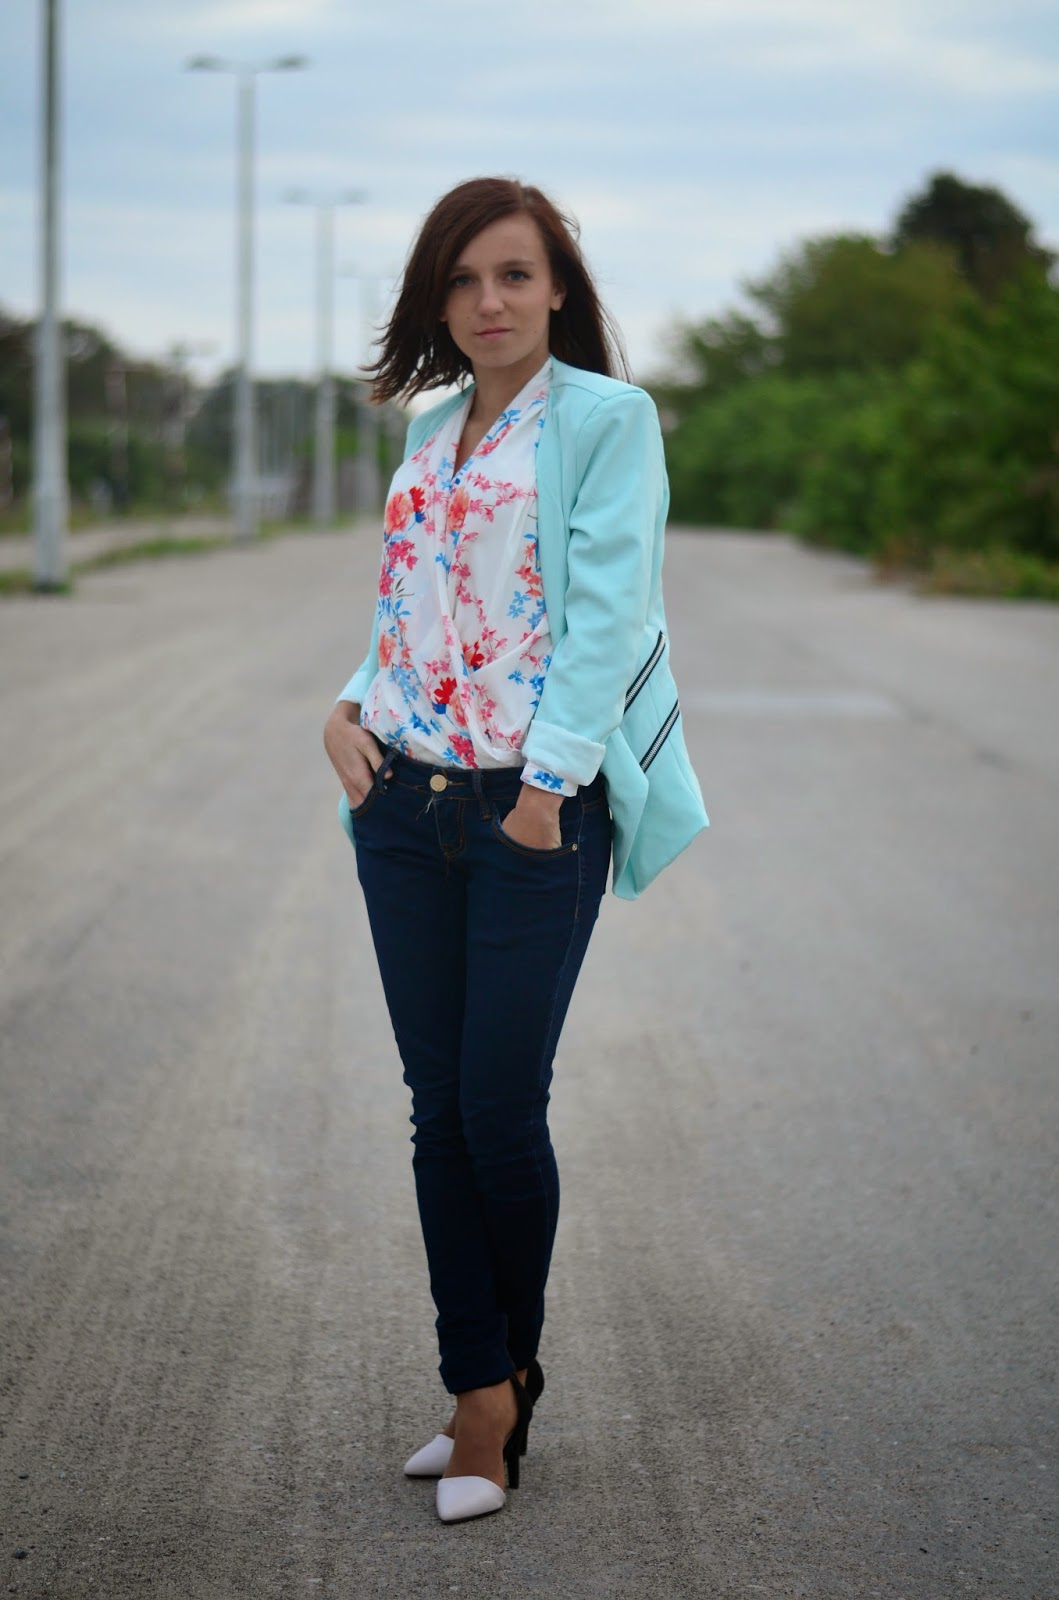 Baby blue&floral blouses ♥